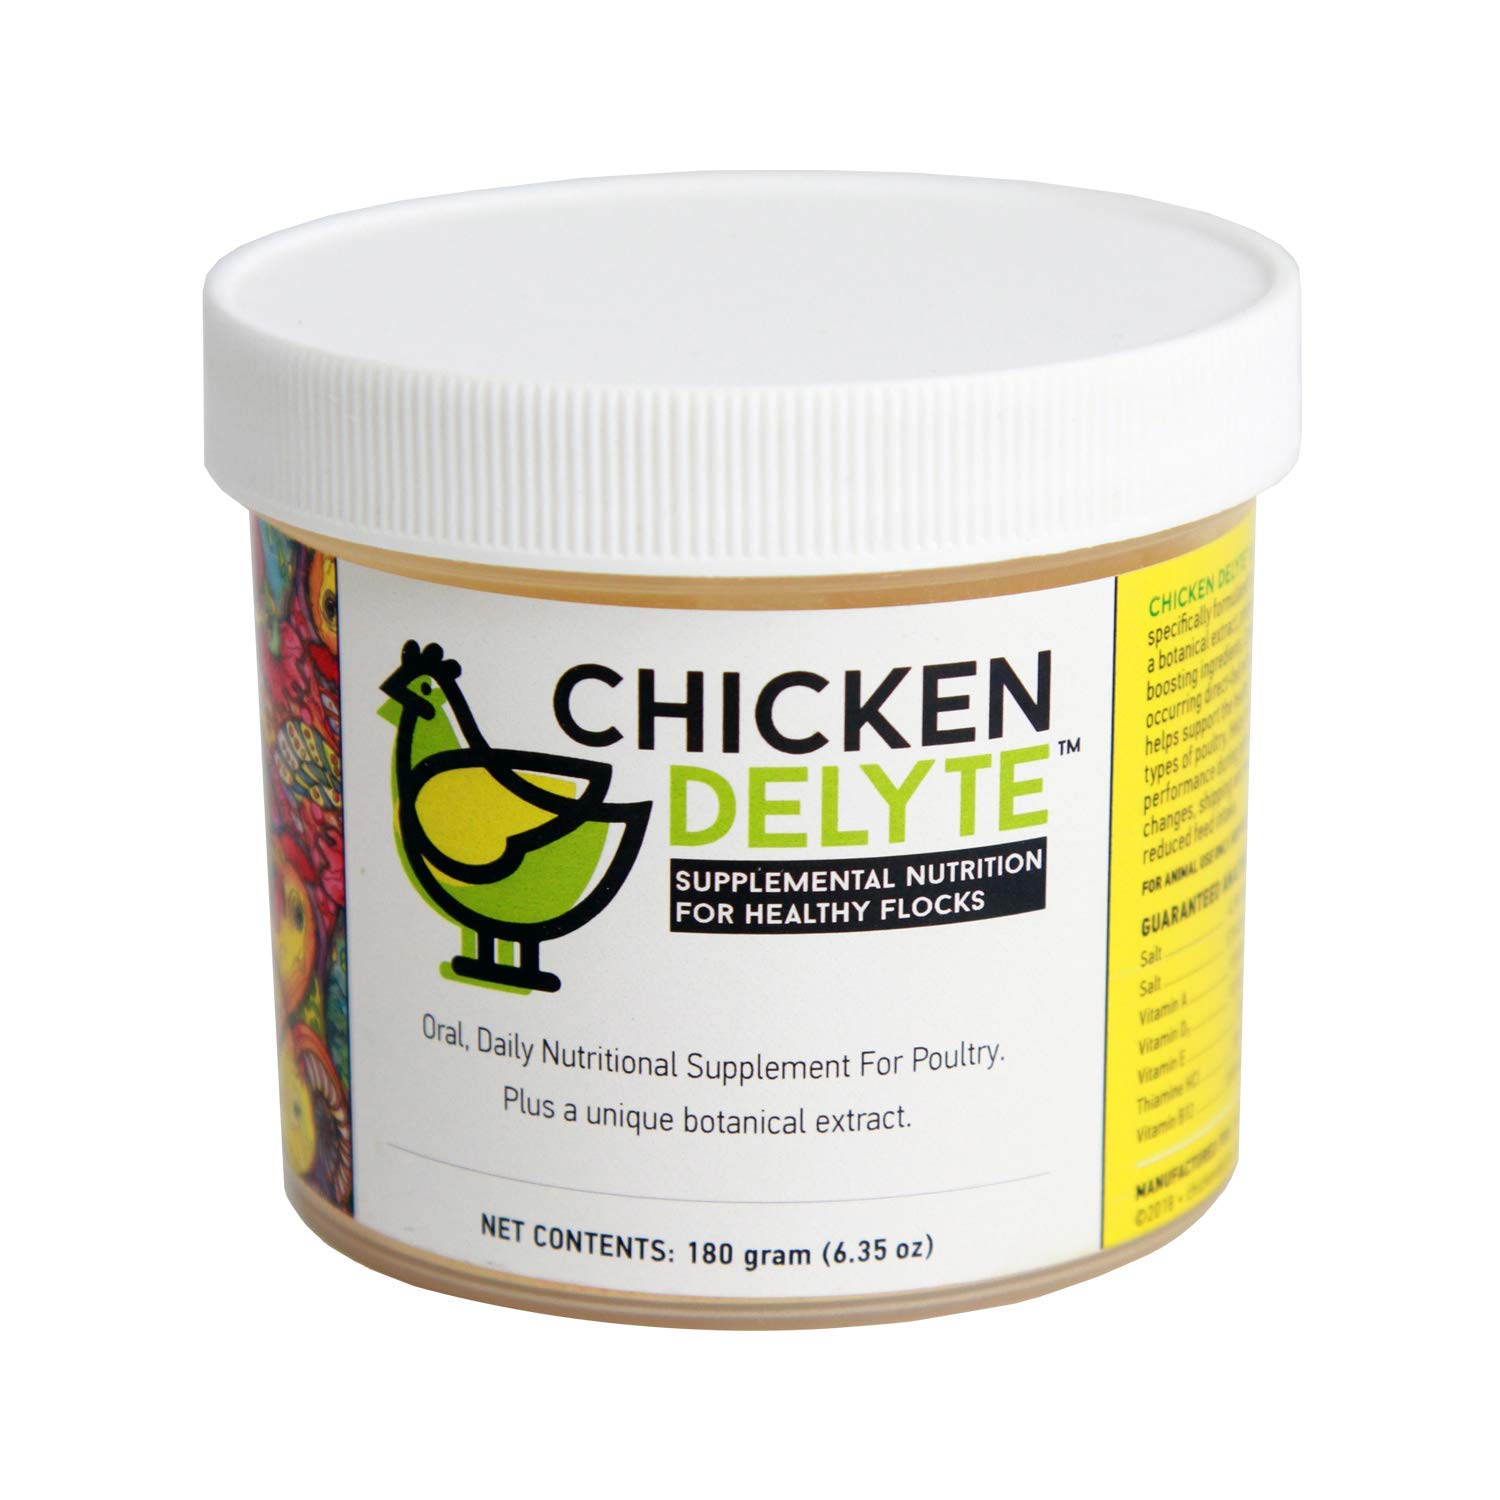 Chicken Delyte Natural Daily Oral Nutritional Supplement for Chickens, Turkeys, Ducks; Supports Immune System & Promotes Better Egg Quality; Maintains Normal Appetite & Digestion during Stress by Chicken DeLyte